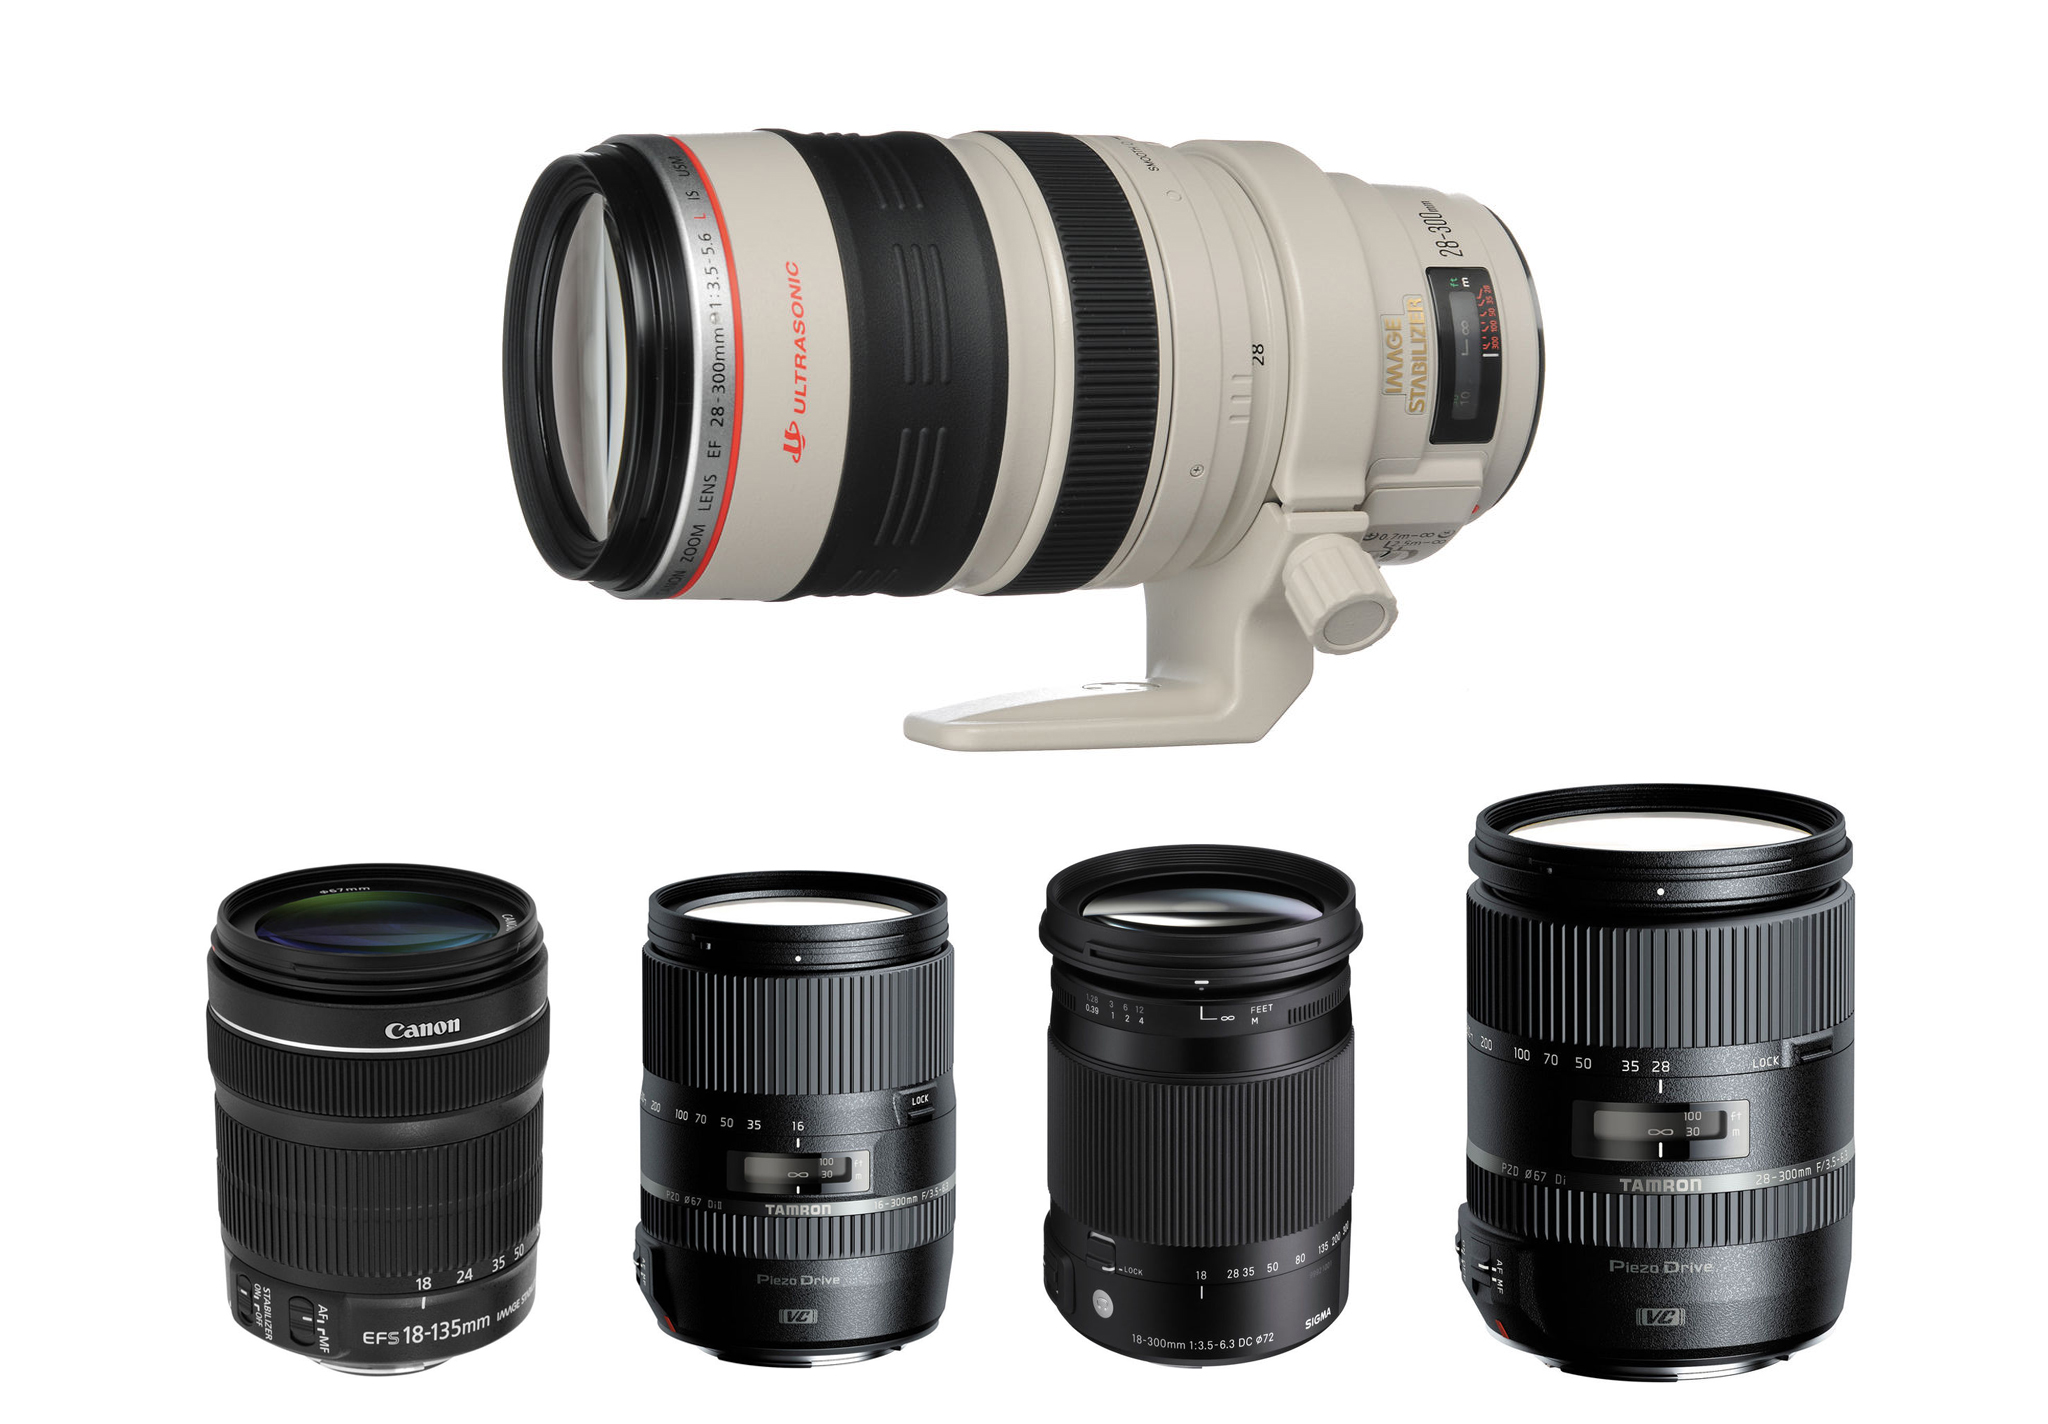 Best All-In-One Zoom Lens for Canon DSLRs | Camera News at Cameraegg